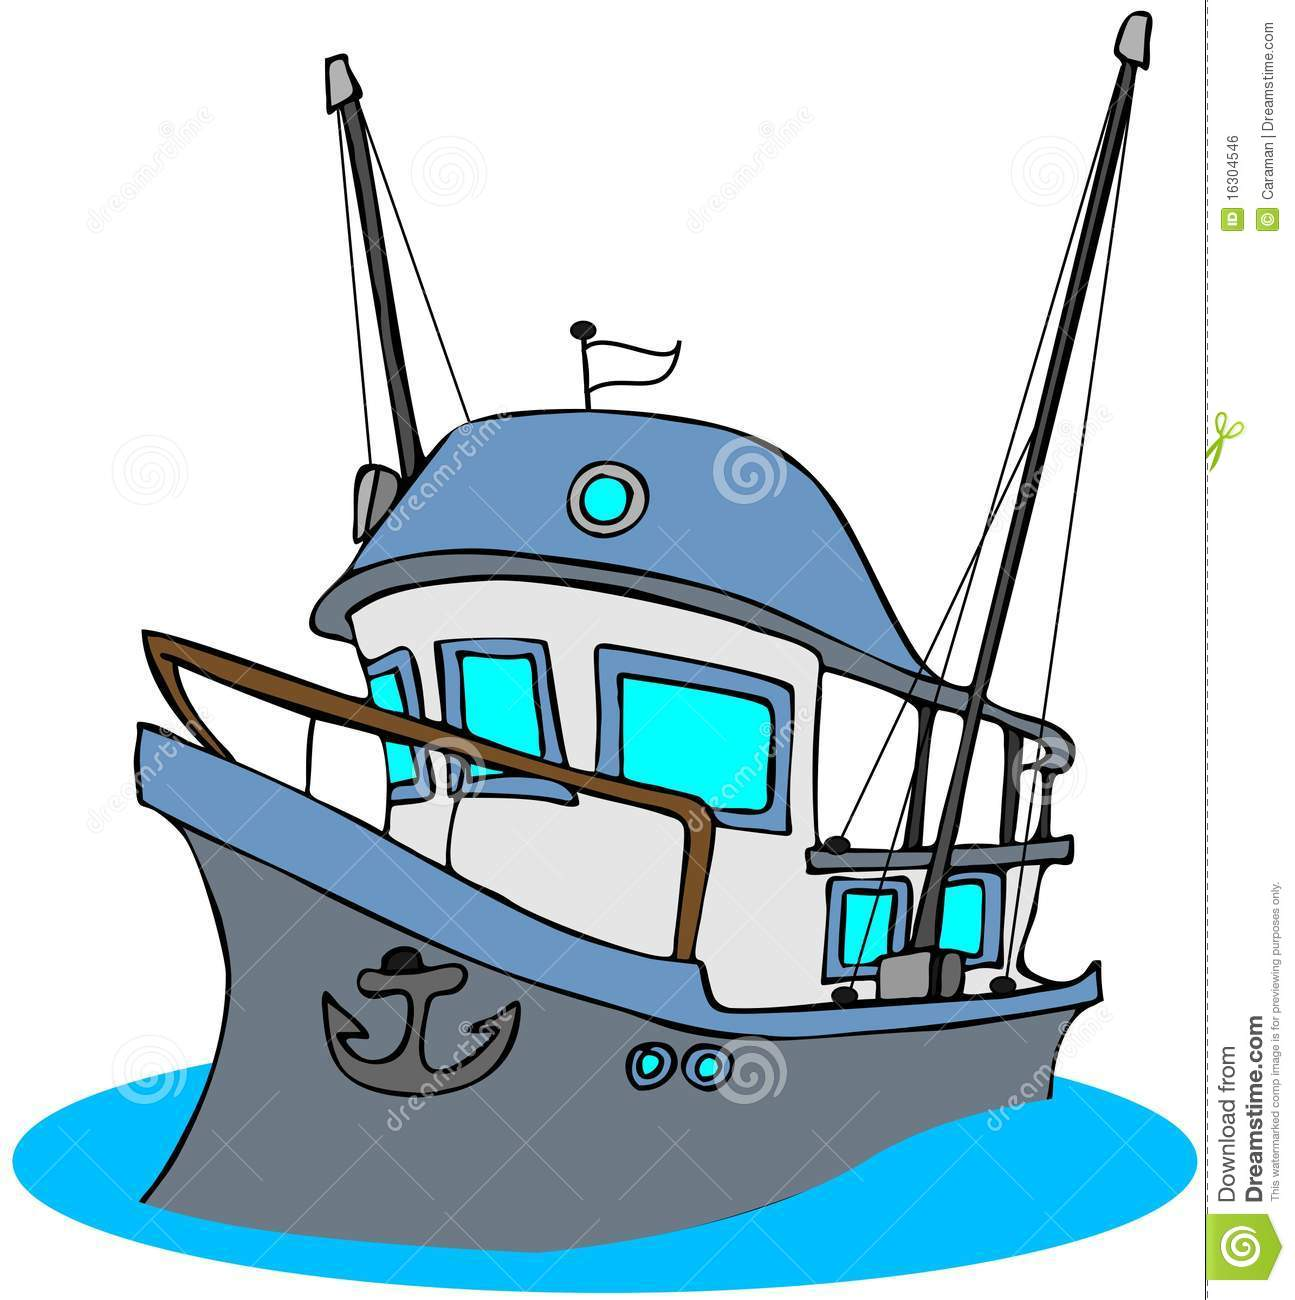 Free download best . Boat clipart fishing trawler